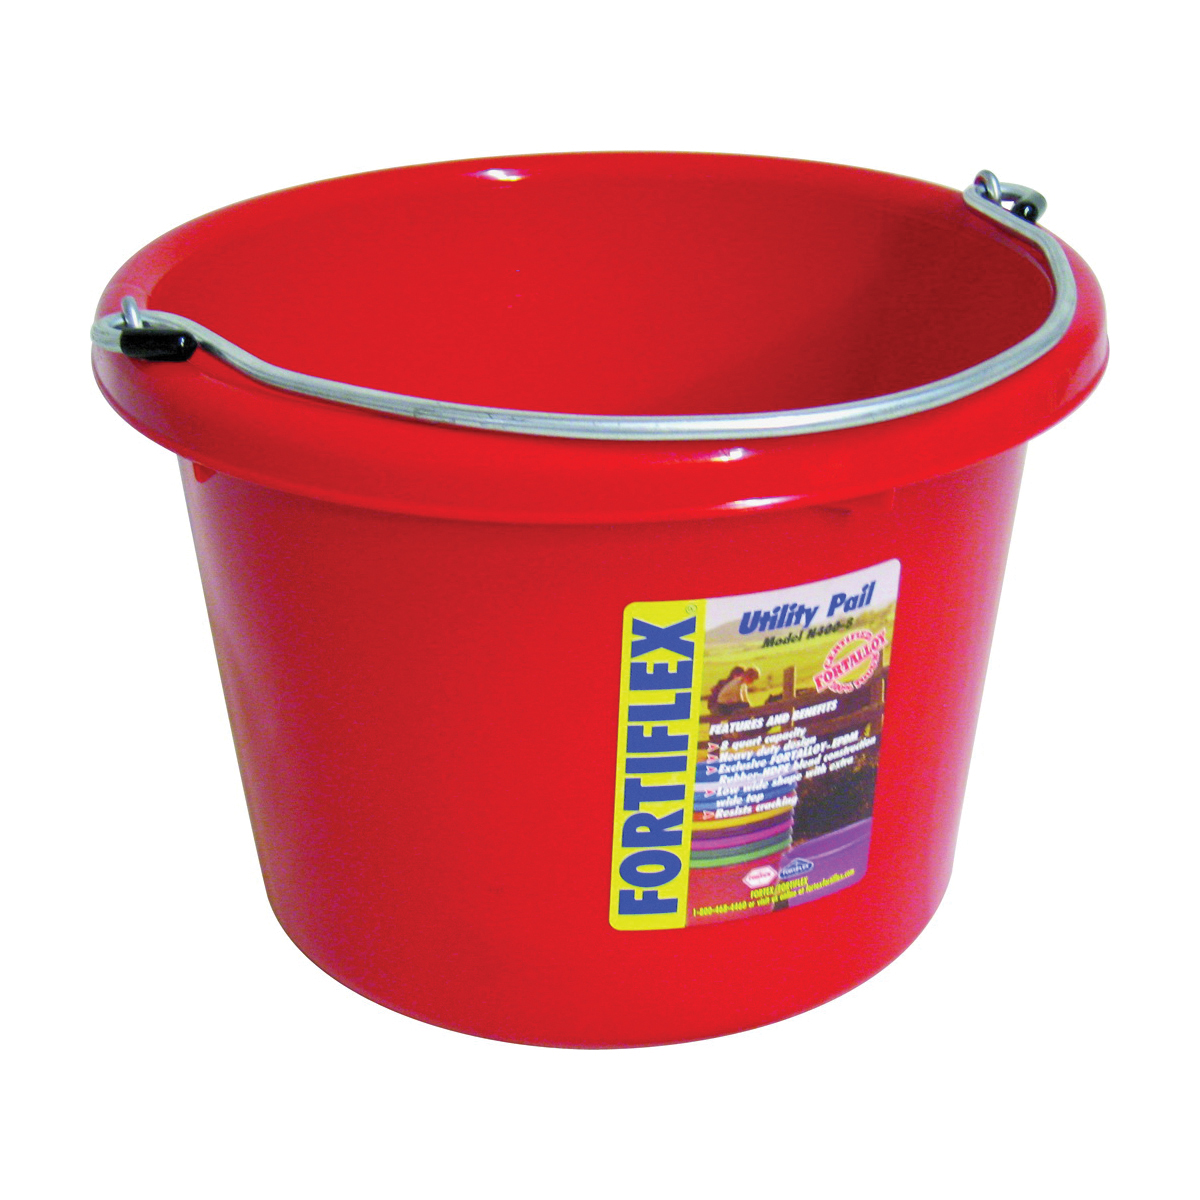 Picture of FORTEX-FORTIFLEX N4008R Utility Pail, 8 qt Volume, Fortalloy Rubber Polymer, Red